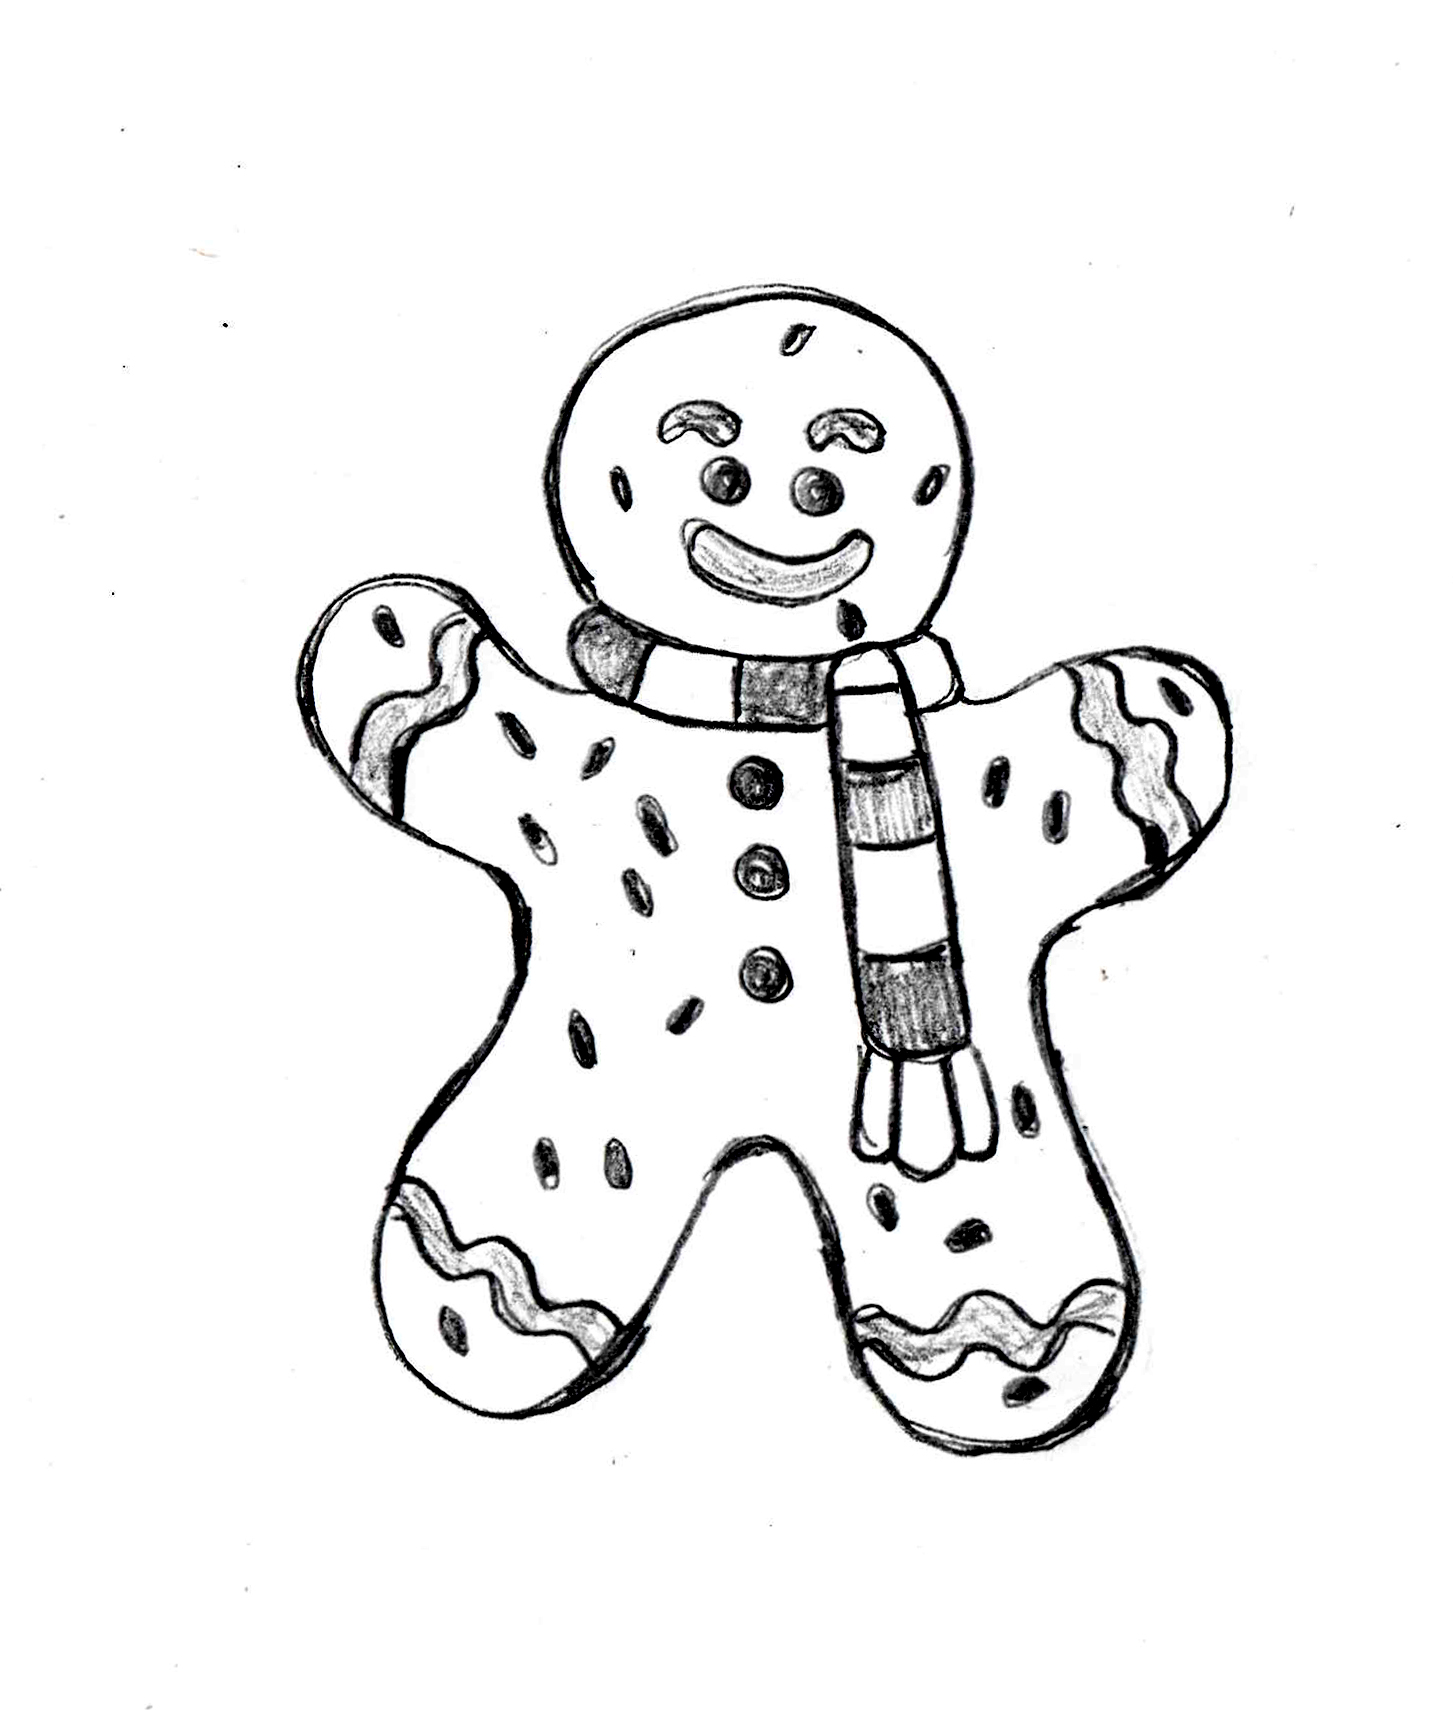 1453x1710 Ginger Breadman Httpit.lydrawingmanuals Drawing Club 2